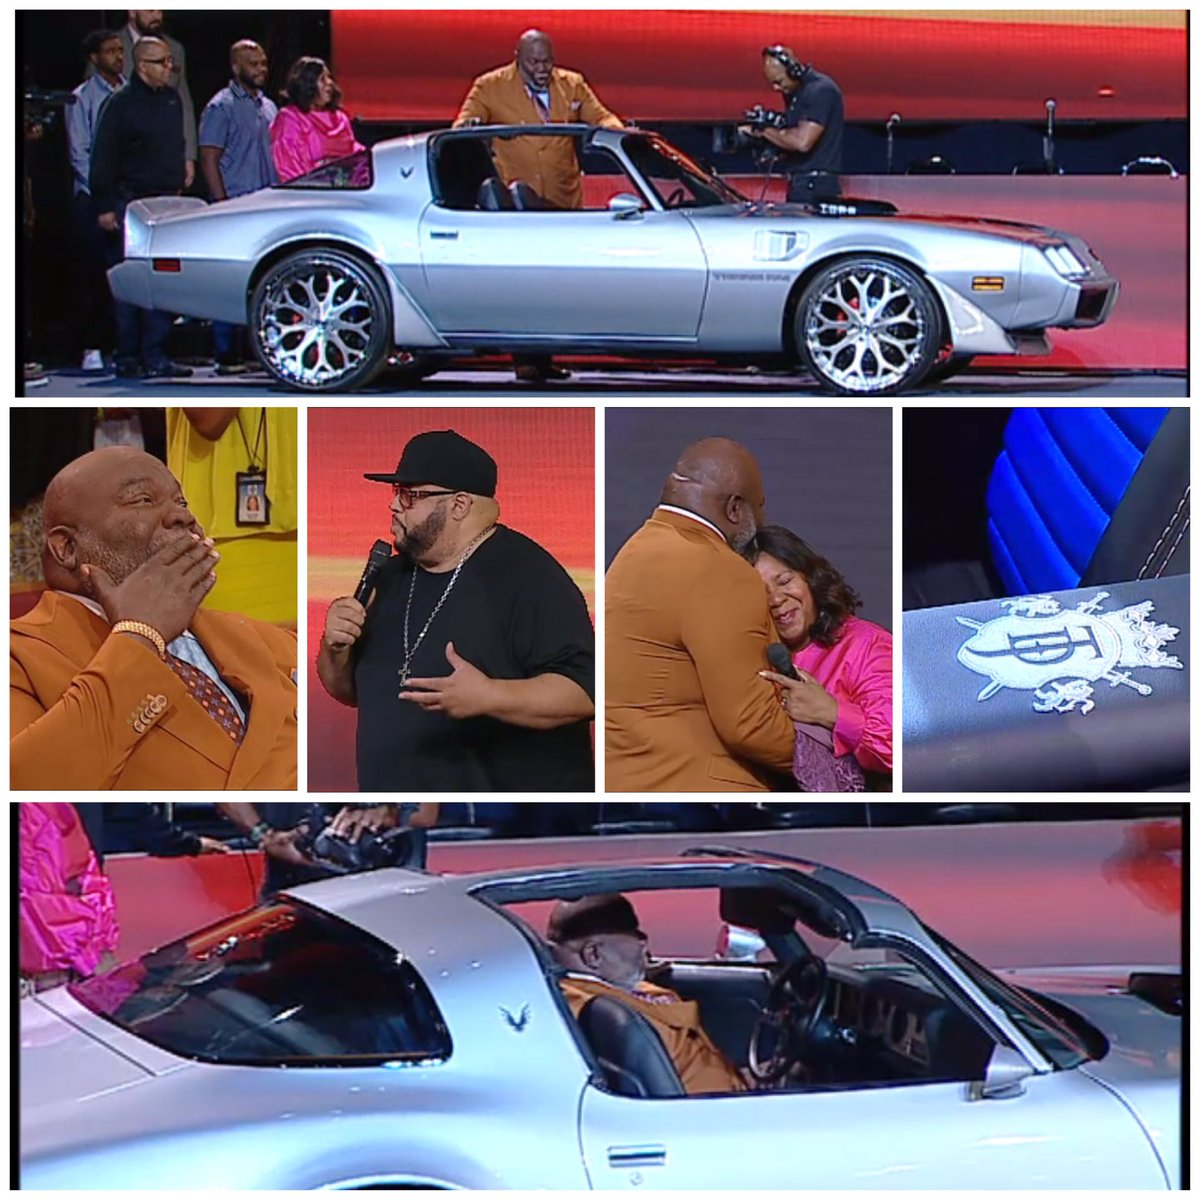 TD Jakes On Twitter This Car Was Rebuilt For You With LOVE Just